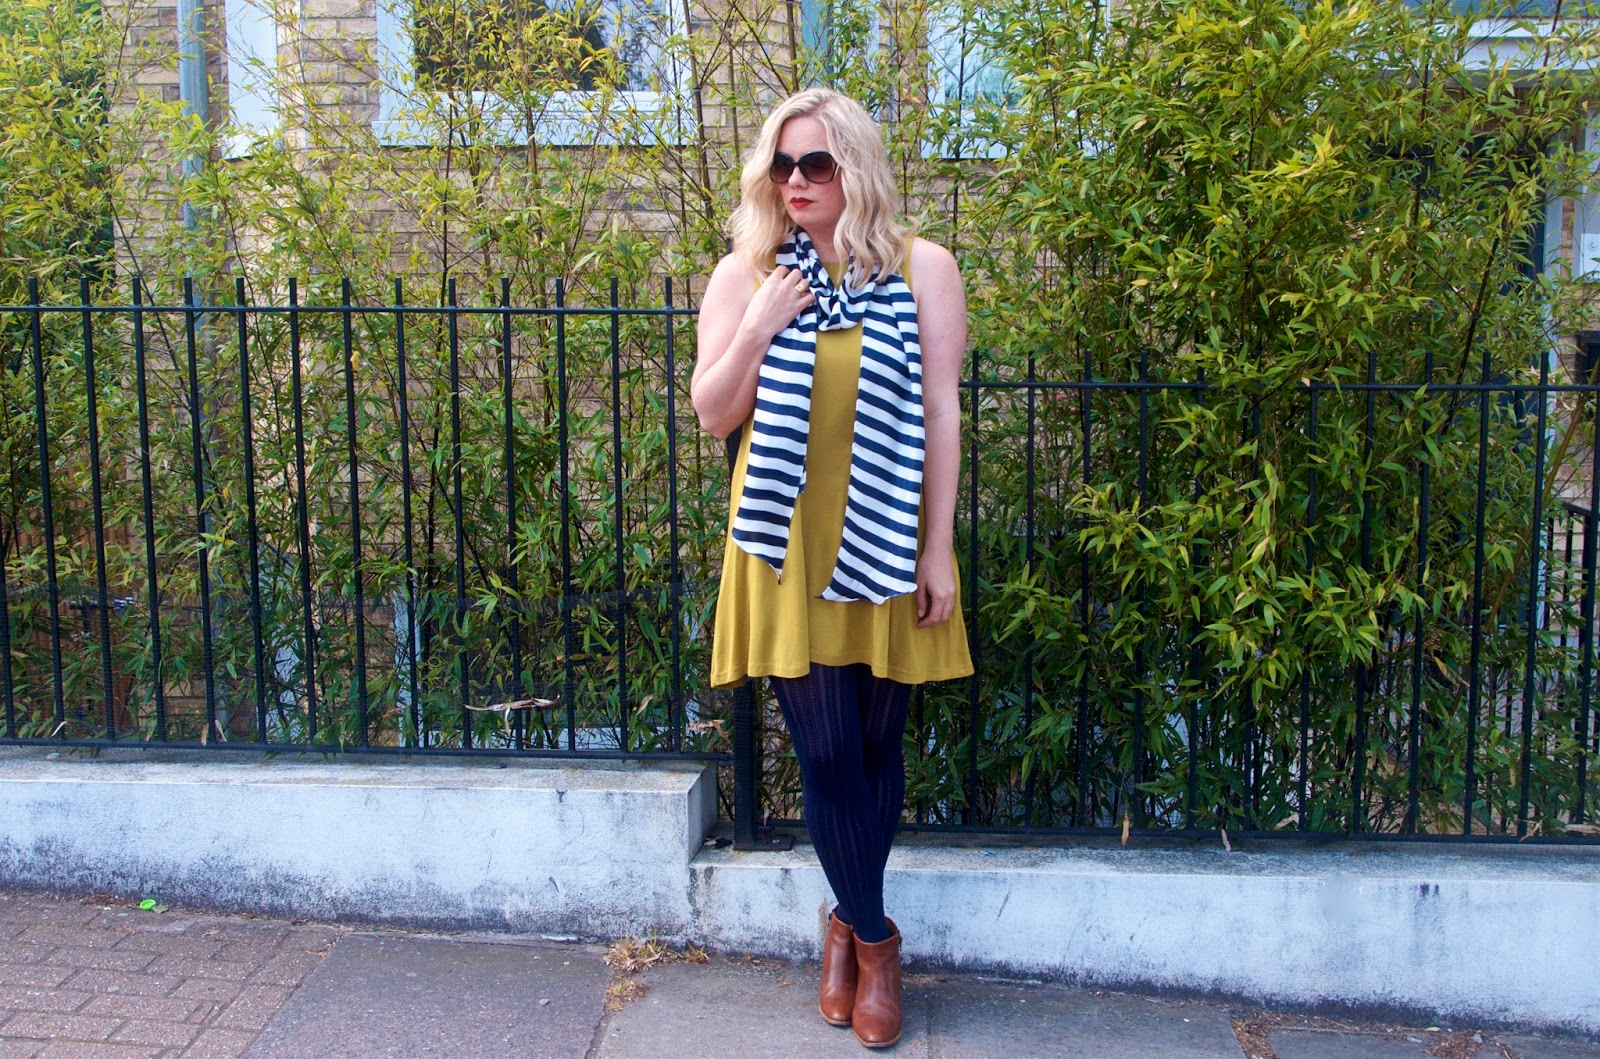 yellow dress, navy and white striped scarf, navy tights, brown boots and sunglasses